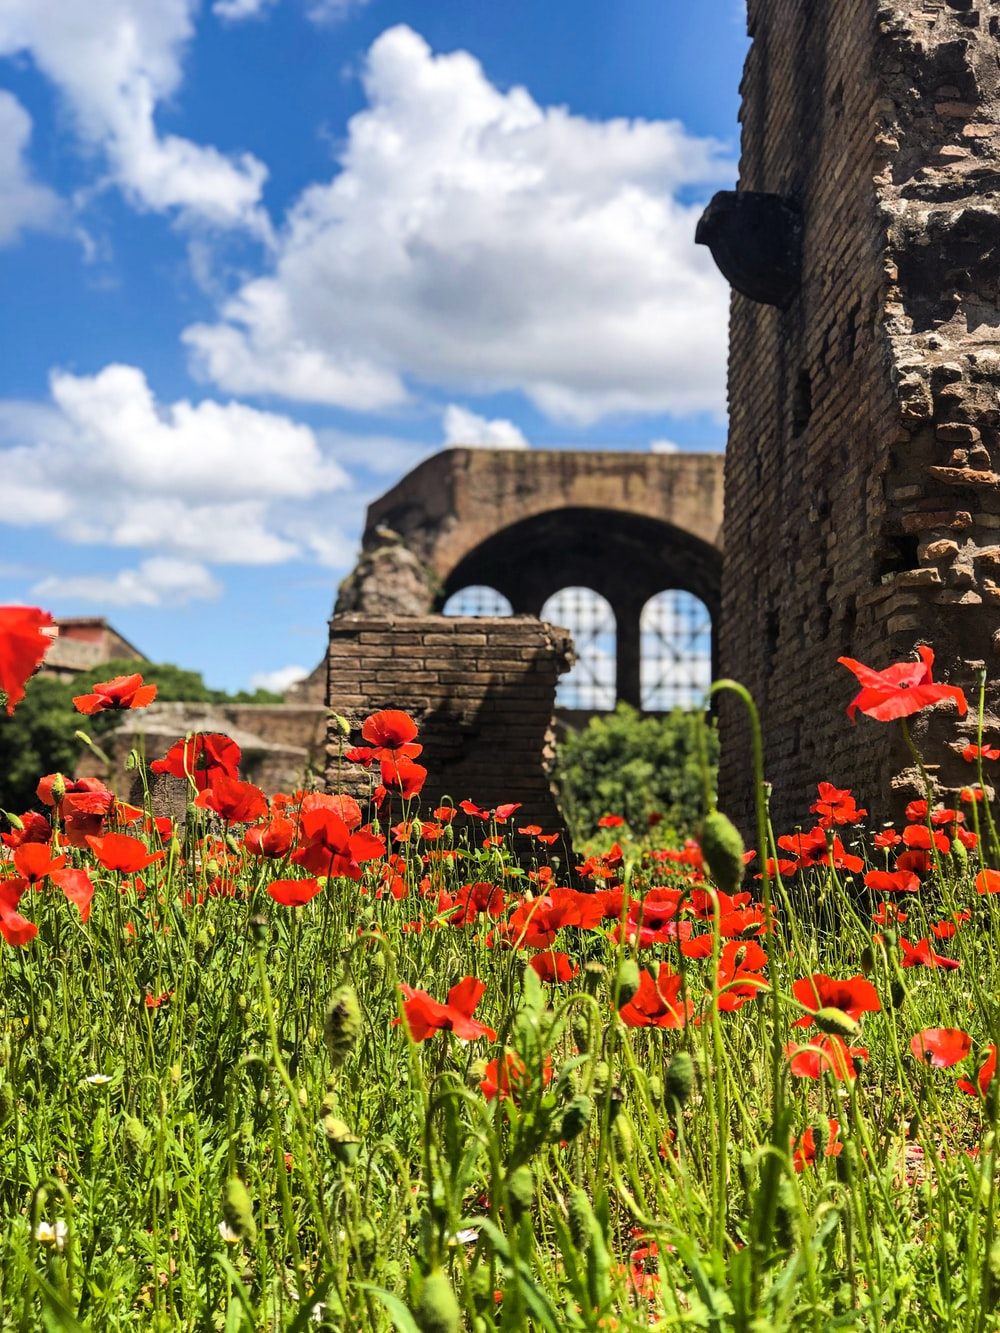 red flowers blooming on lawn by the ruins under white and blue cloudy sky